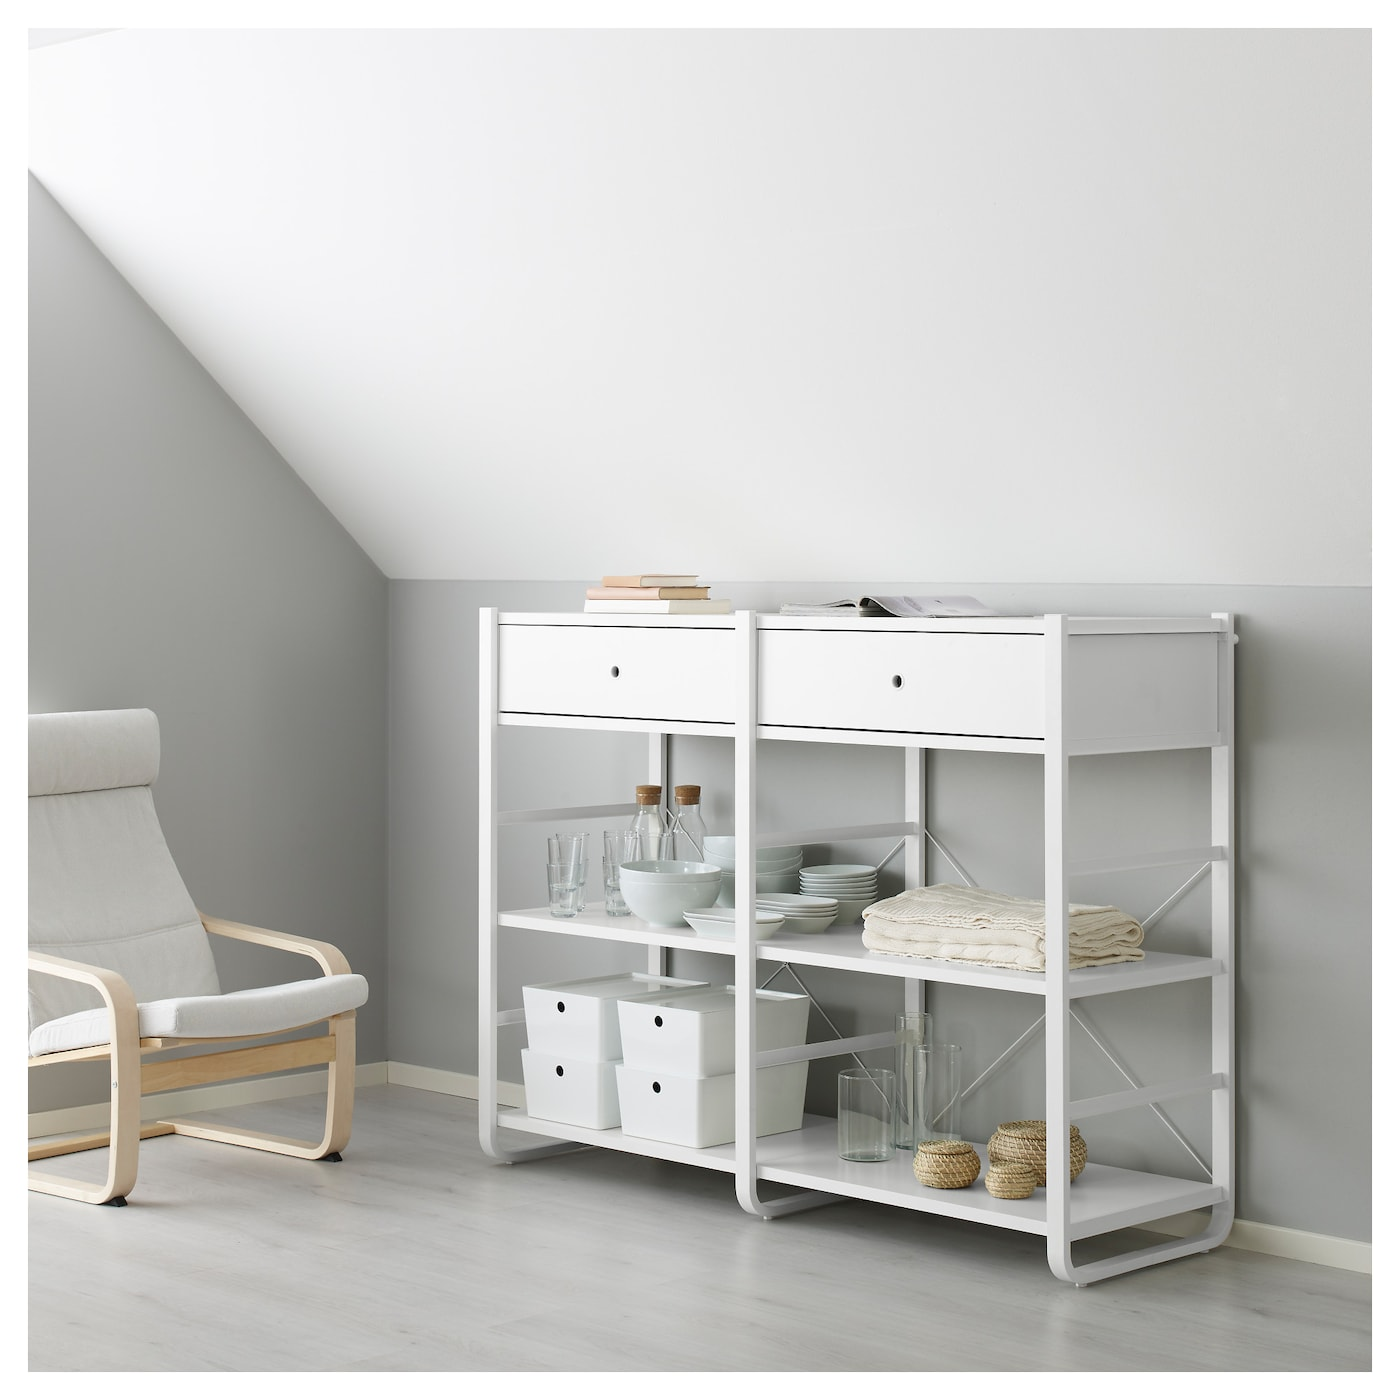 elvarli 2 sections white 165 x 55 x 126 cm ikea. Black Bedroom Furniture Sets. Home Design Ideas